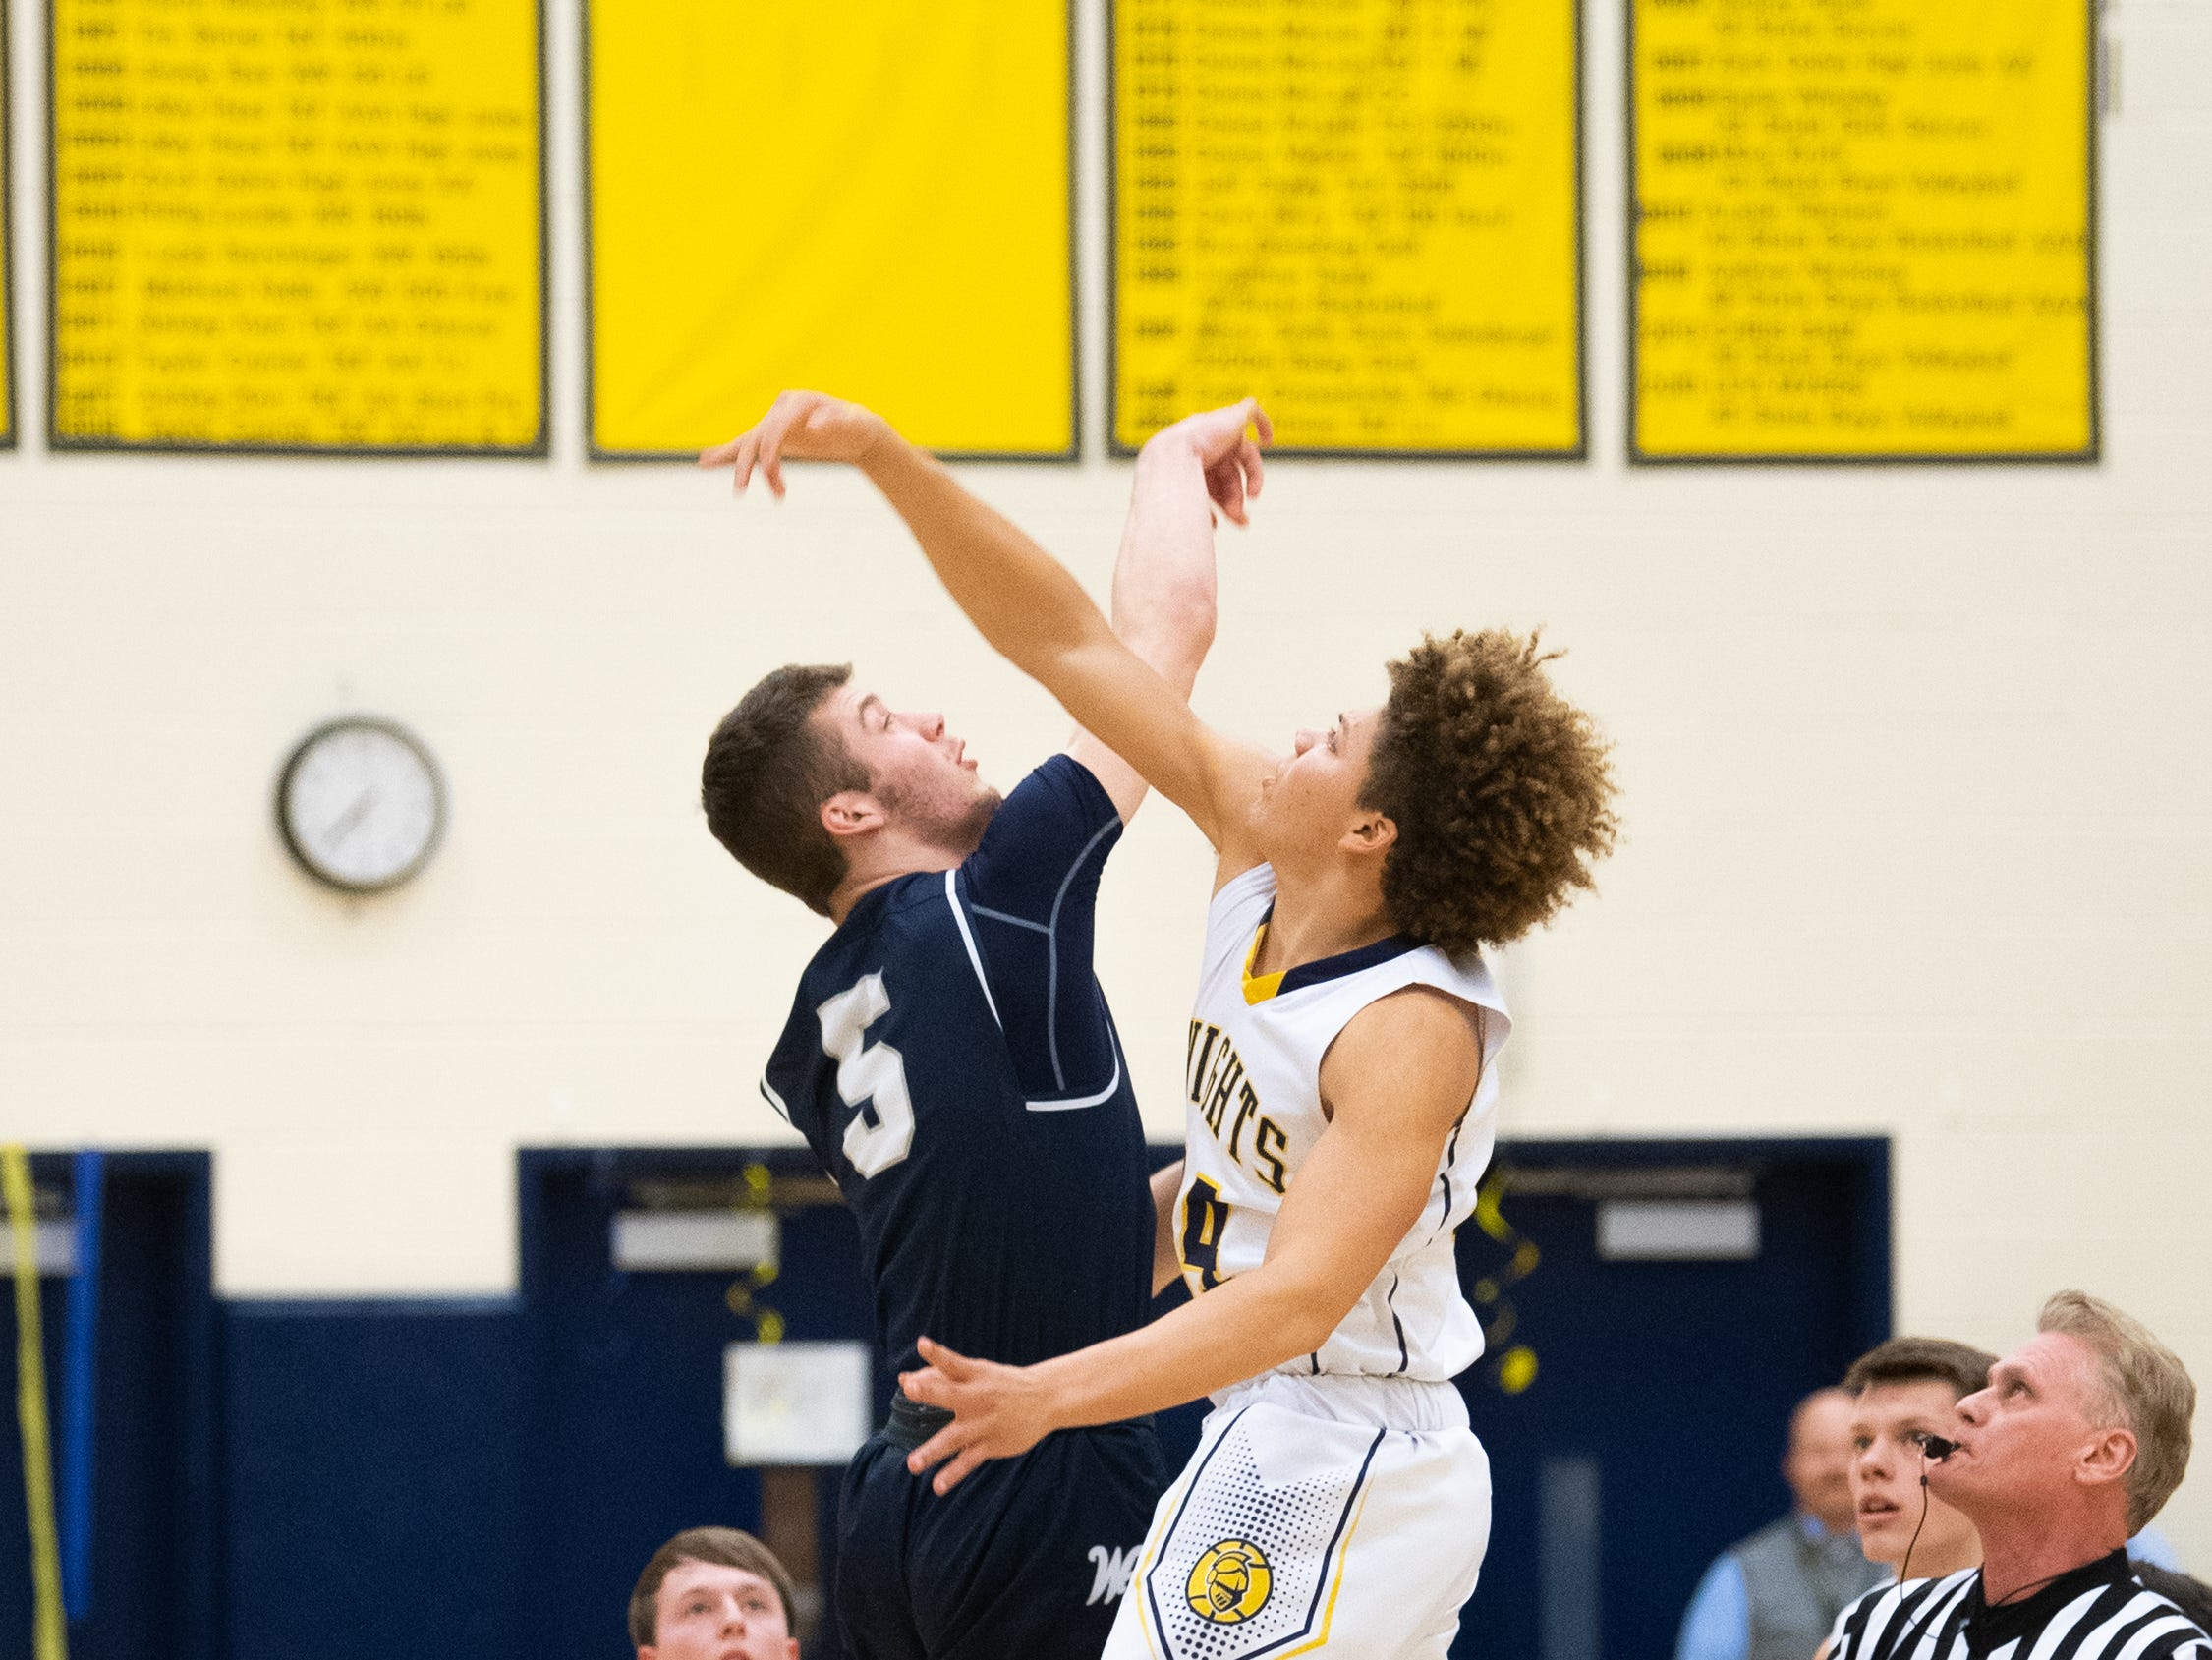 Andrew LaManna (5) and DeMonte Martin (14) go for the opening tip-off during the YAIAA boys' basketball game between Eastern York and West York, Friday, January 25, 2019 at Eastern York High School. The Golden Knights defeated the Bulldogs 59 to 55.